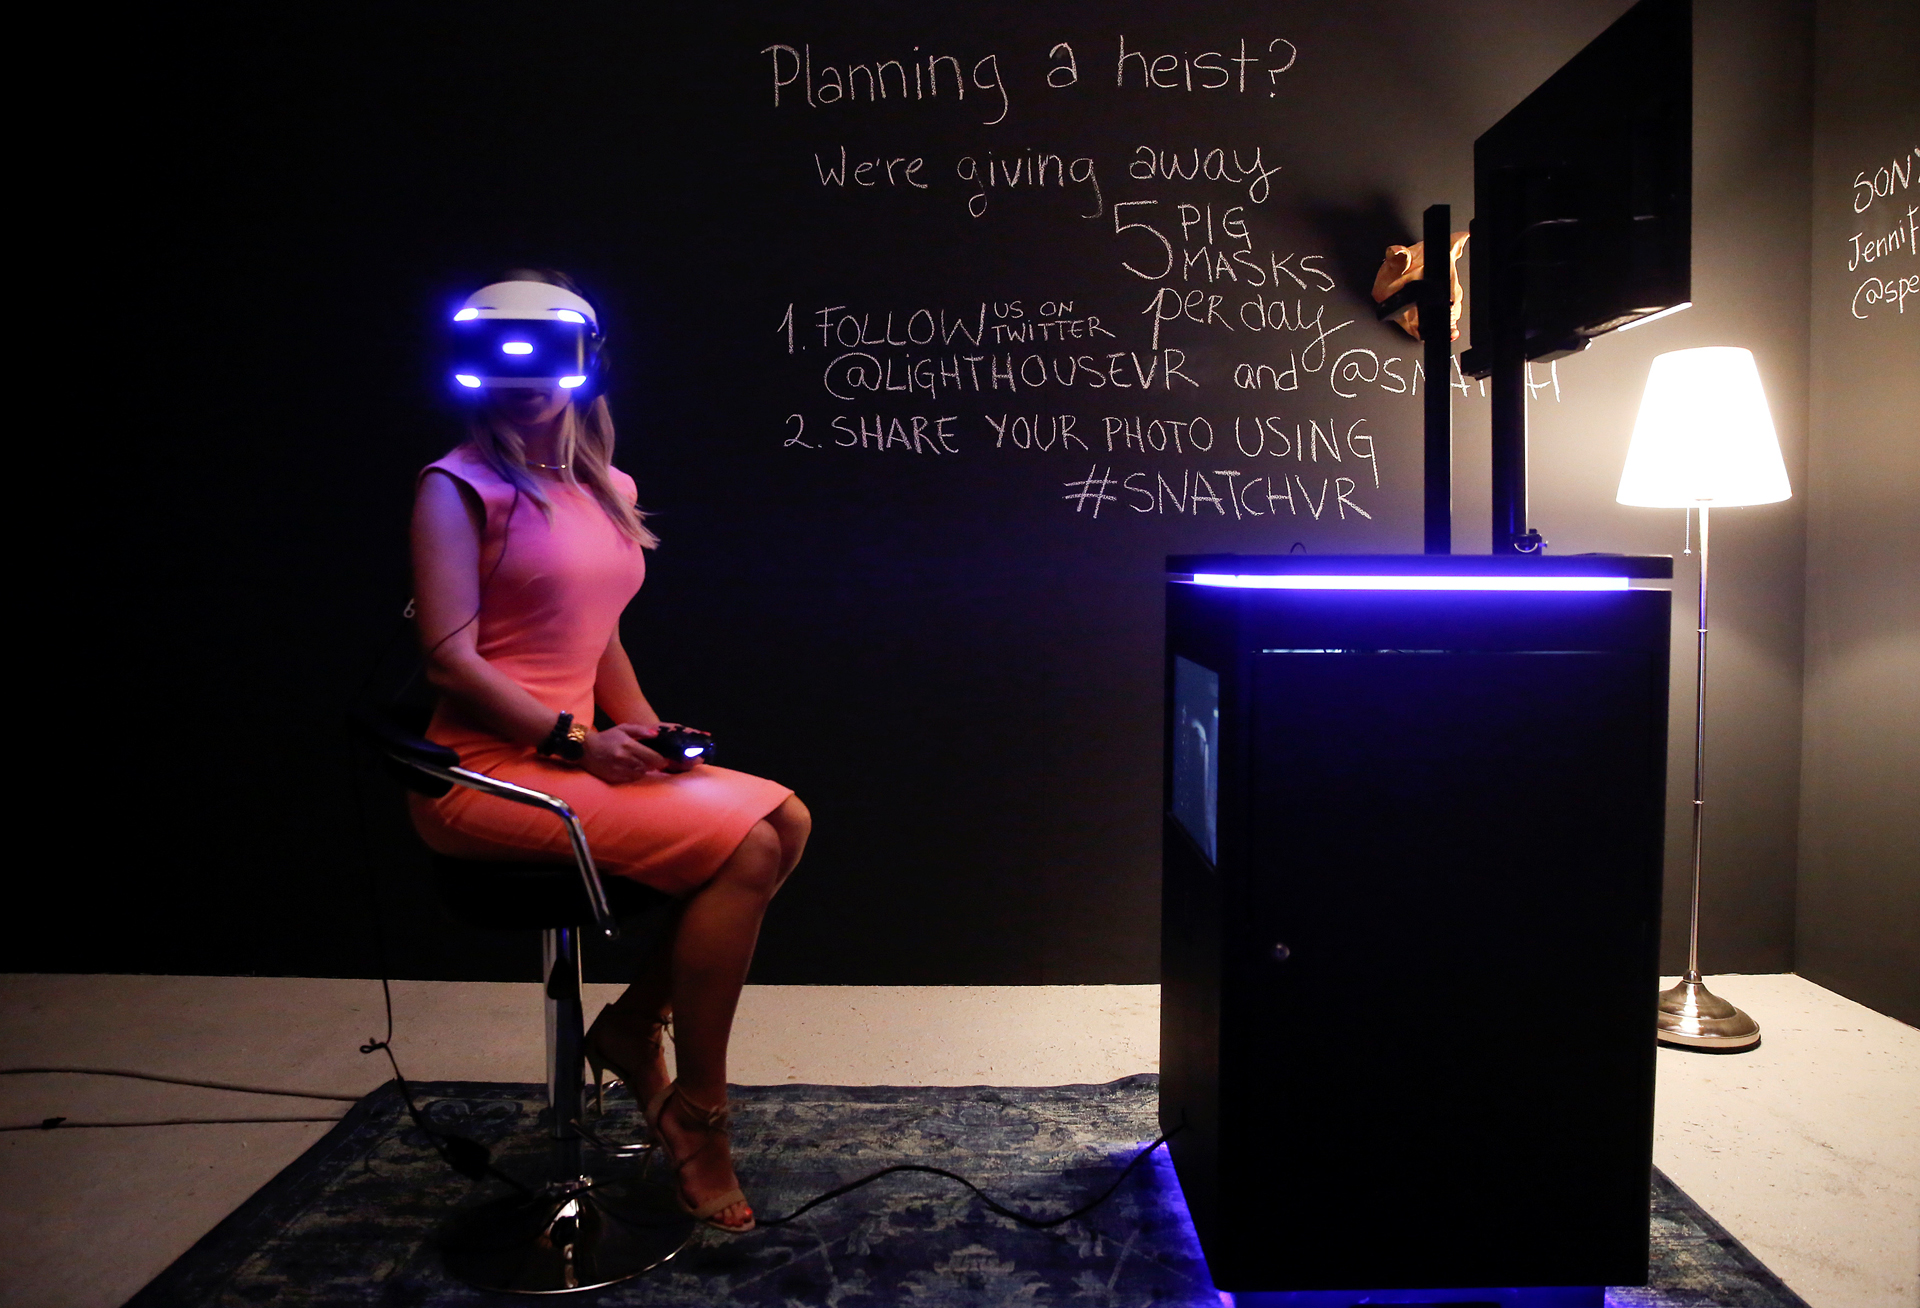 Virtual reality can help make everyone more empathetic